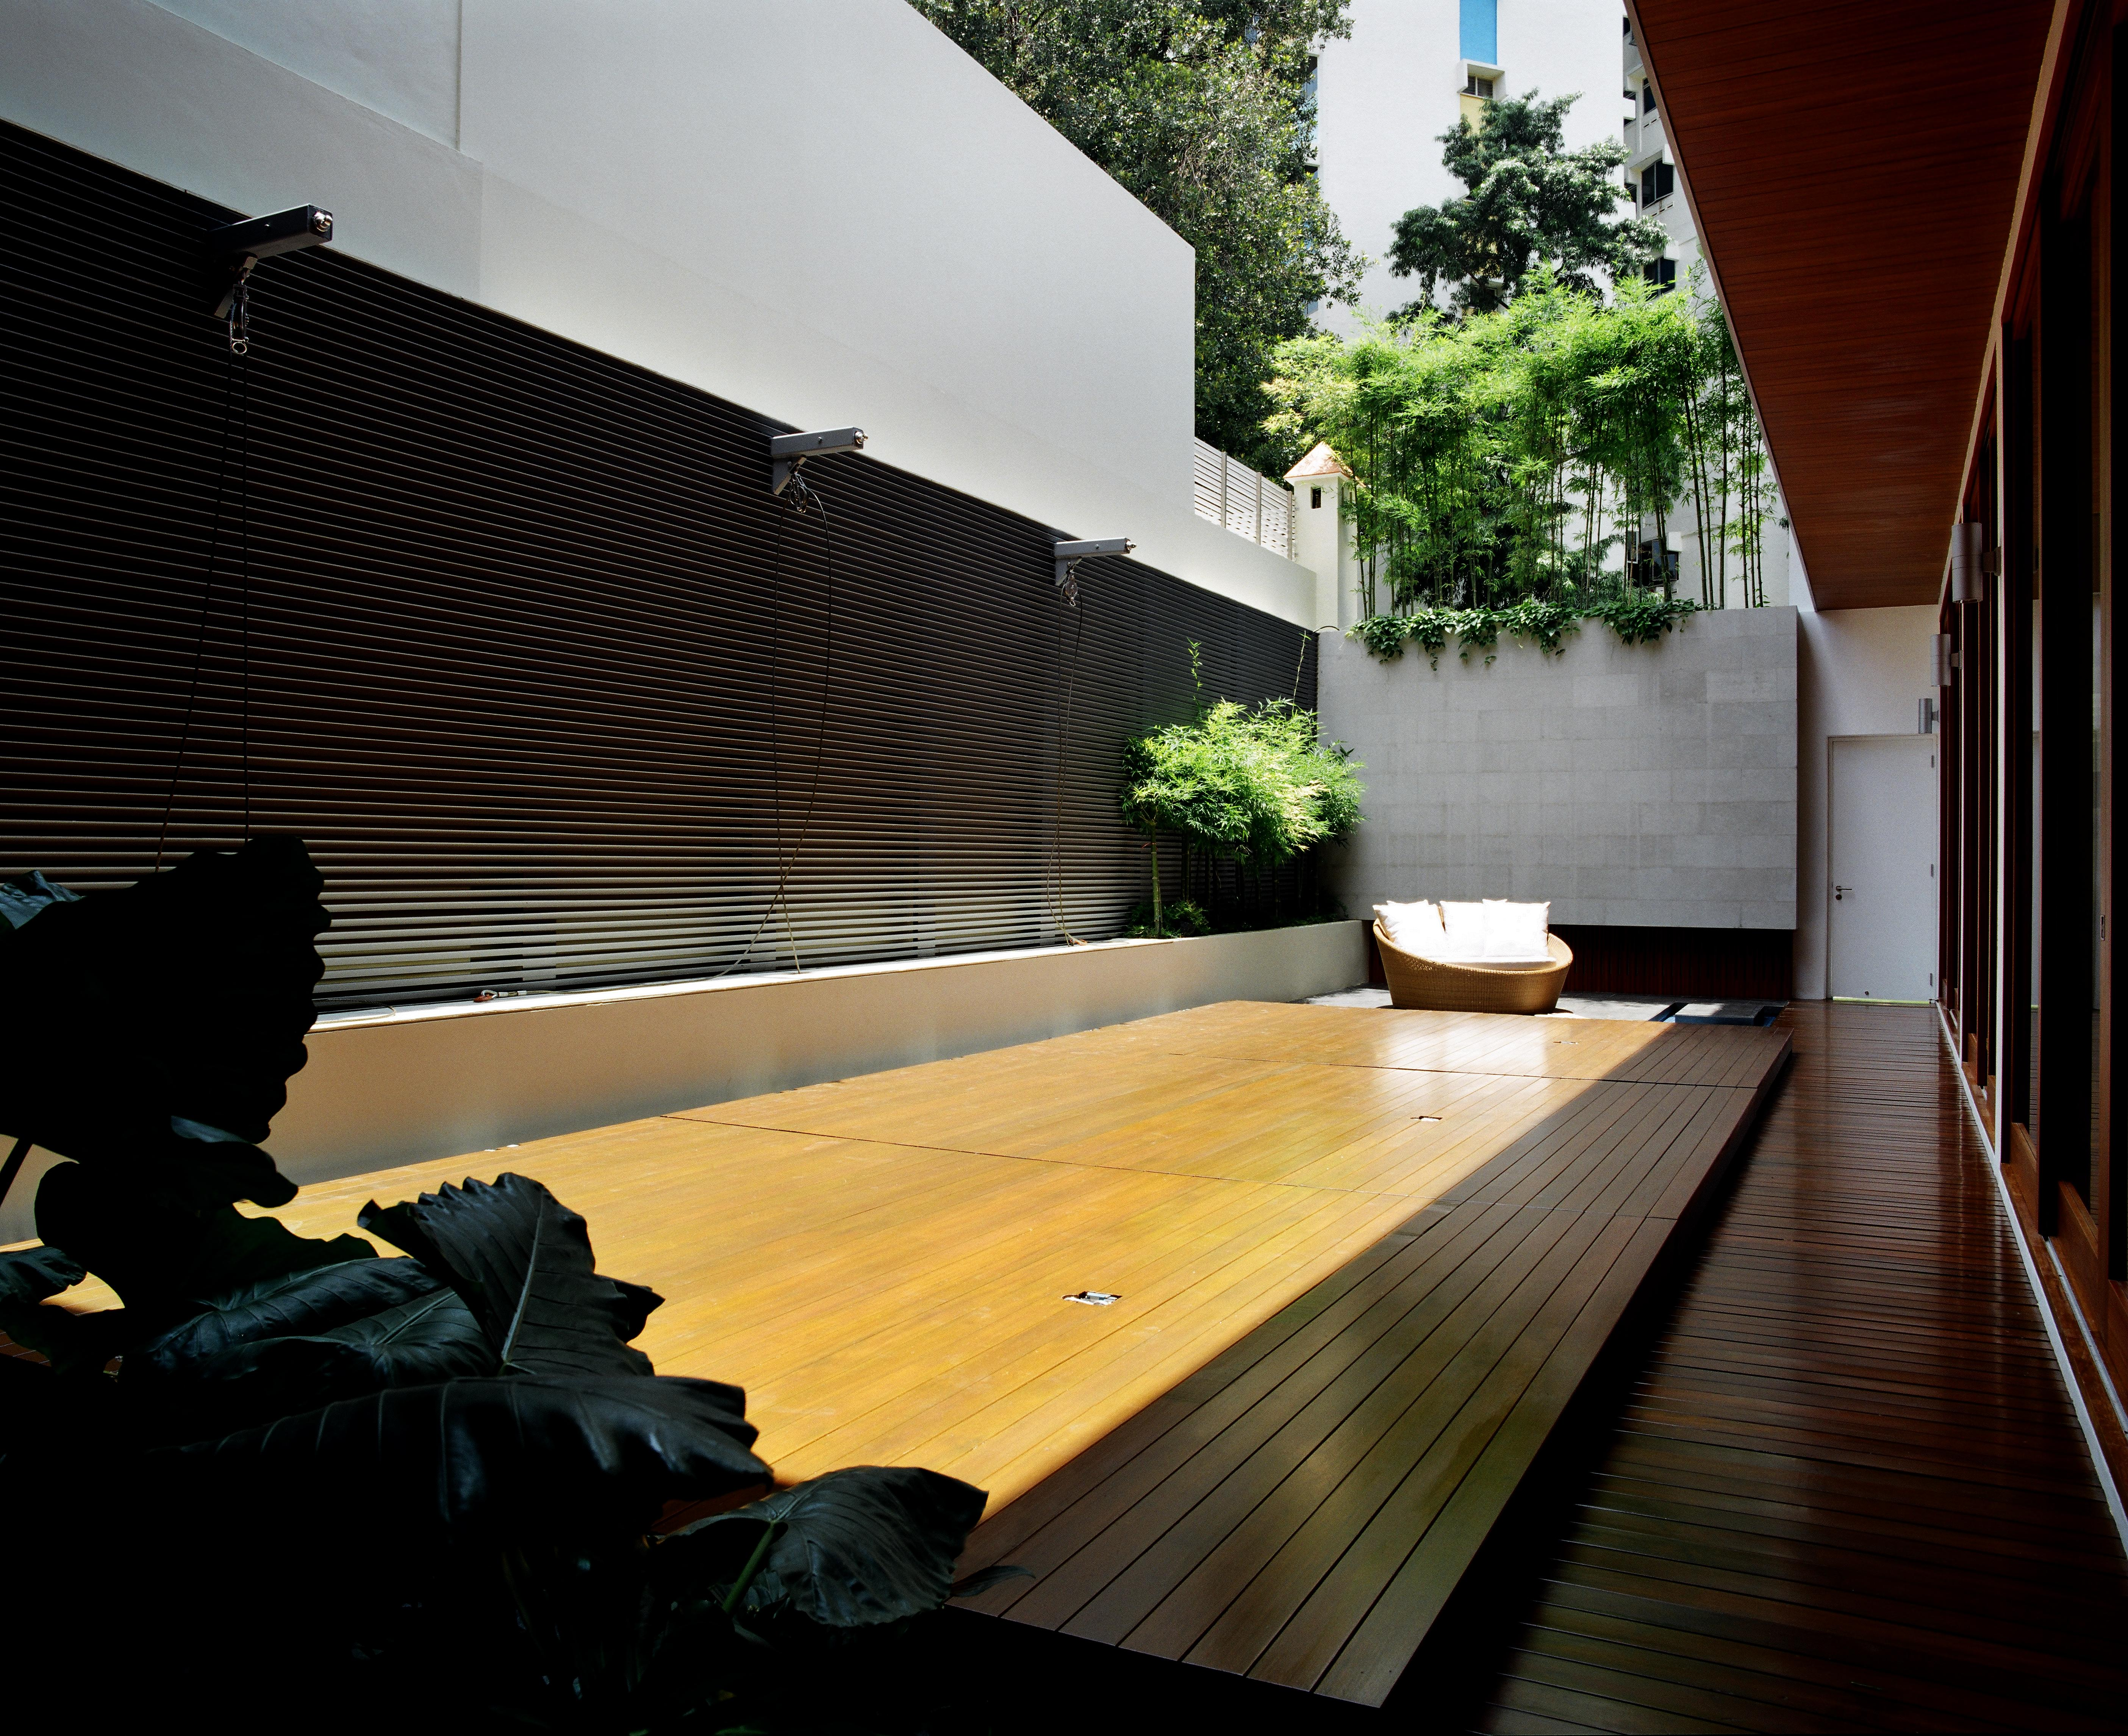 Seen in the closed position, the pool deck creates a raised hardwood platform, extending the courtyard's livable space.